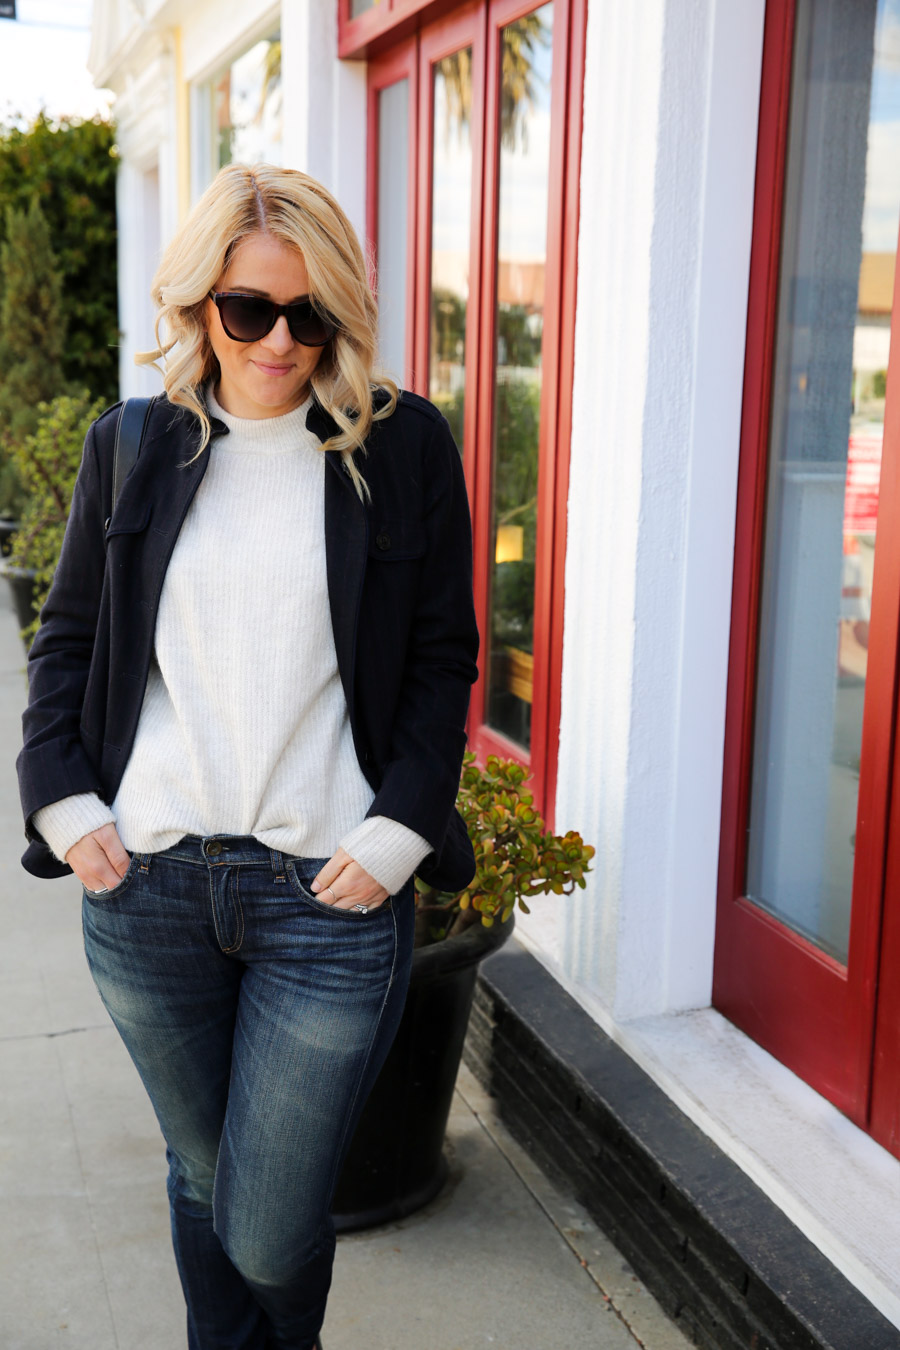 Layering Clothes - White Turtleneck Sweater Outfit with Jeans